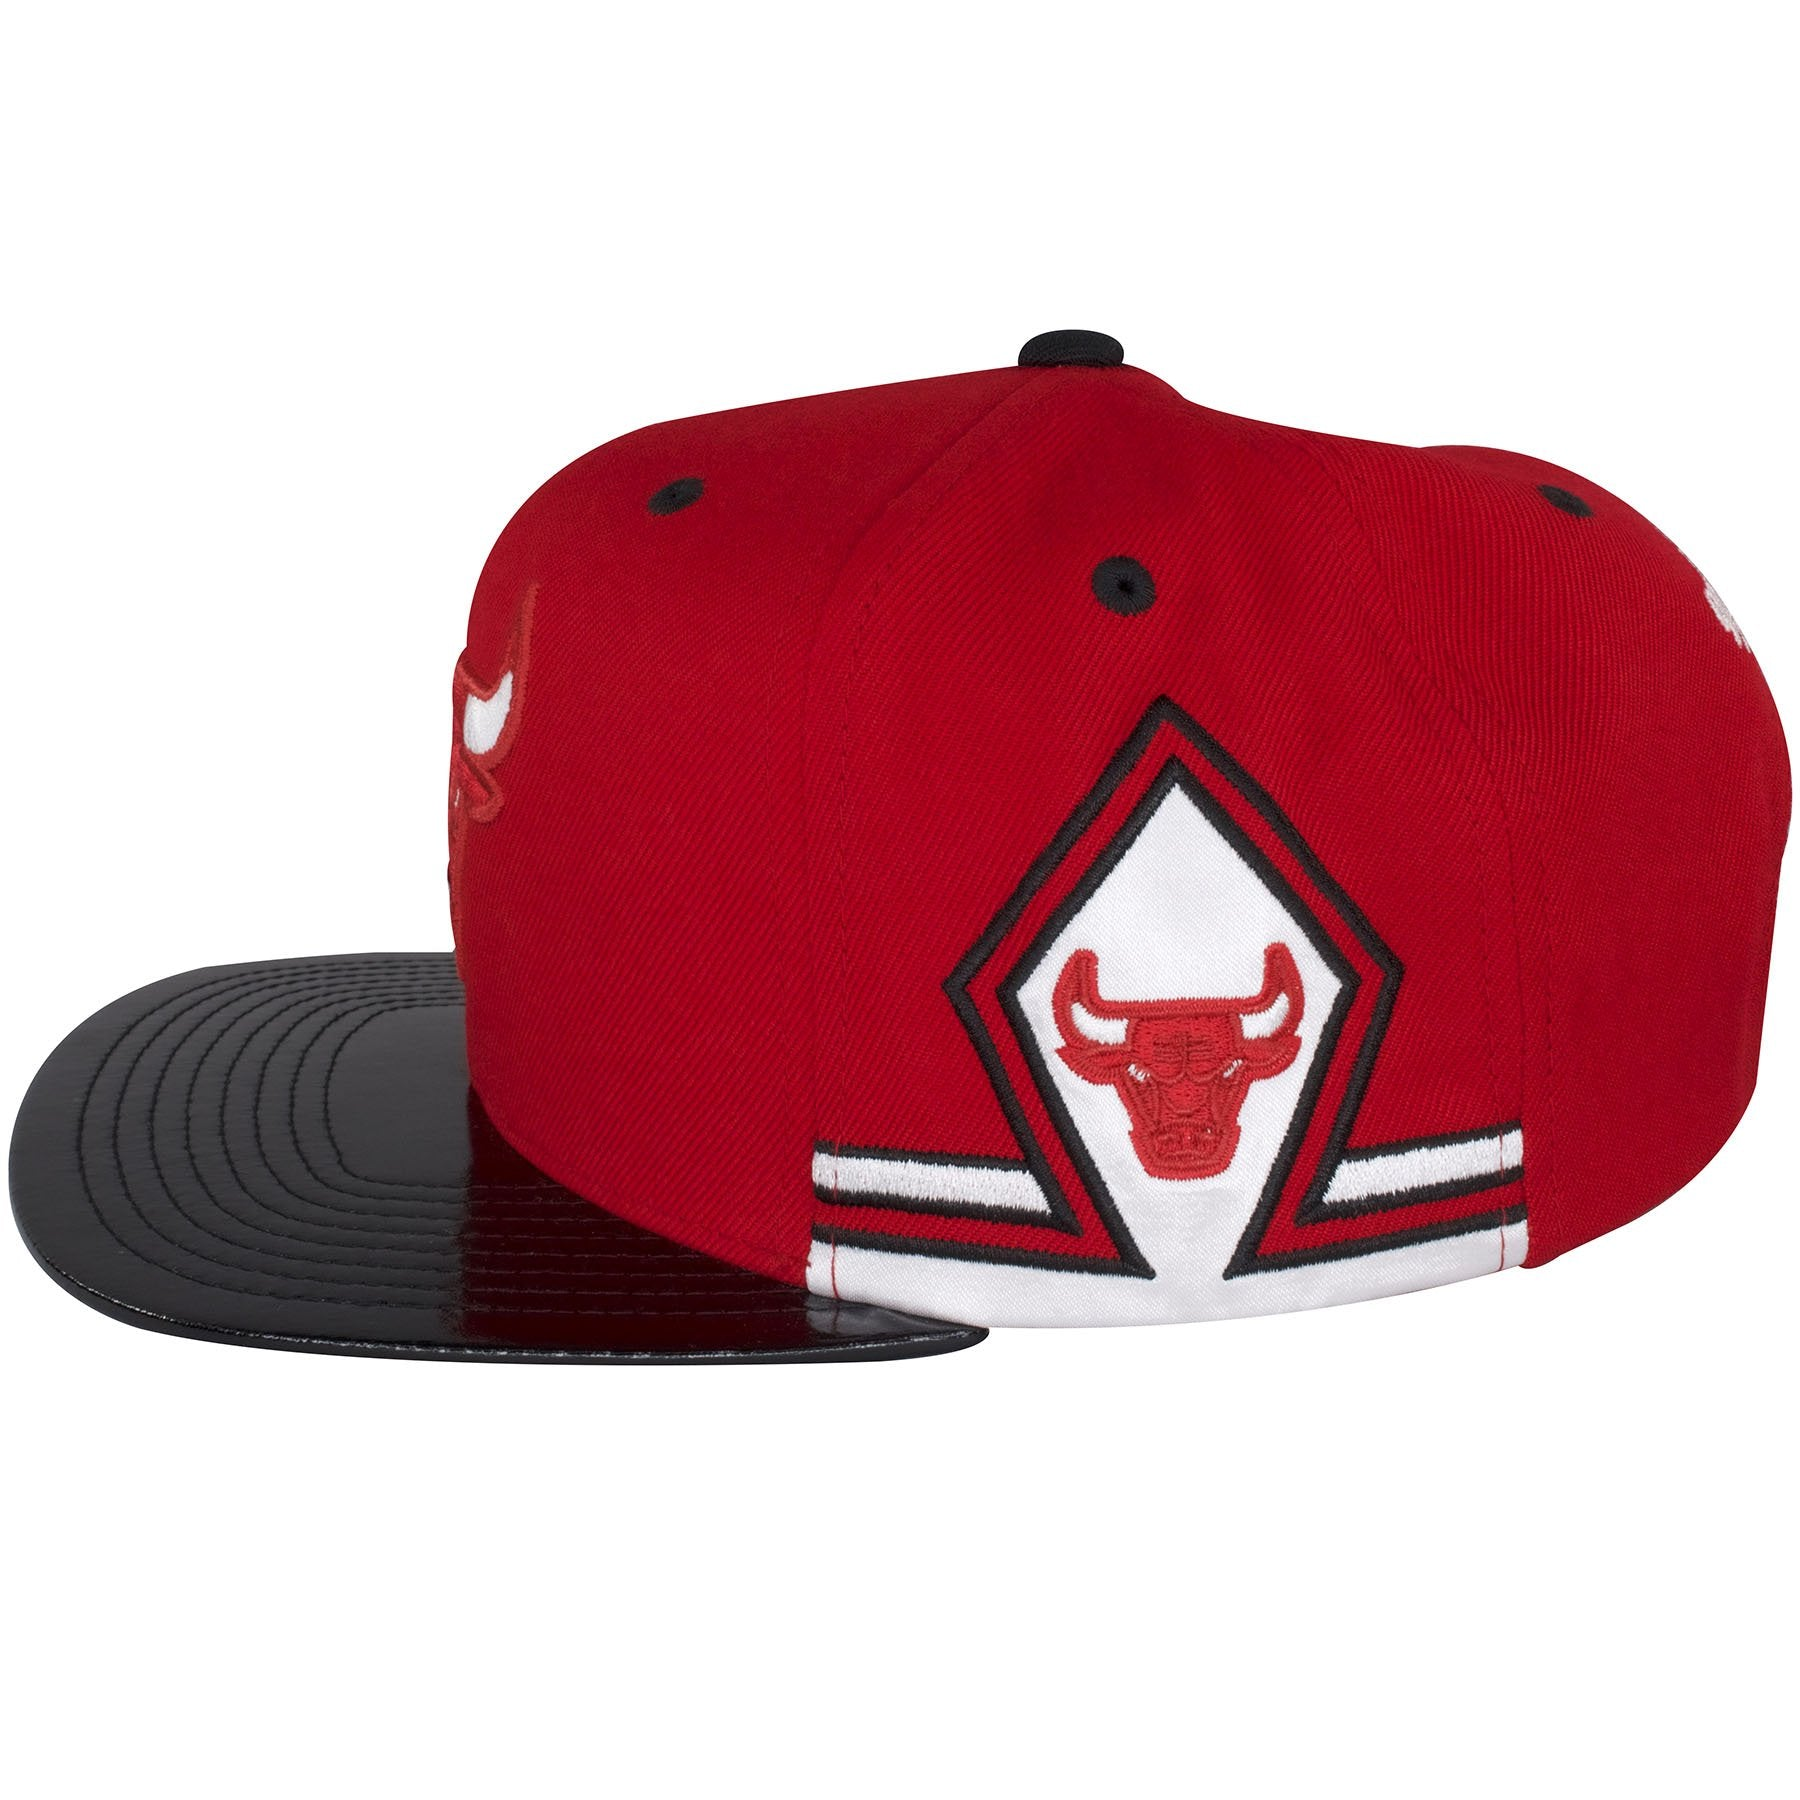 96c1b074641 ... The sides of this Chicago Bulls Mitchell and Ness Snapback hat shows a  diamond design made · The back of this Win Like 96 ...